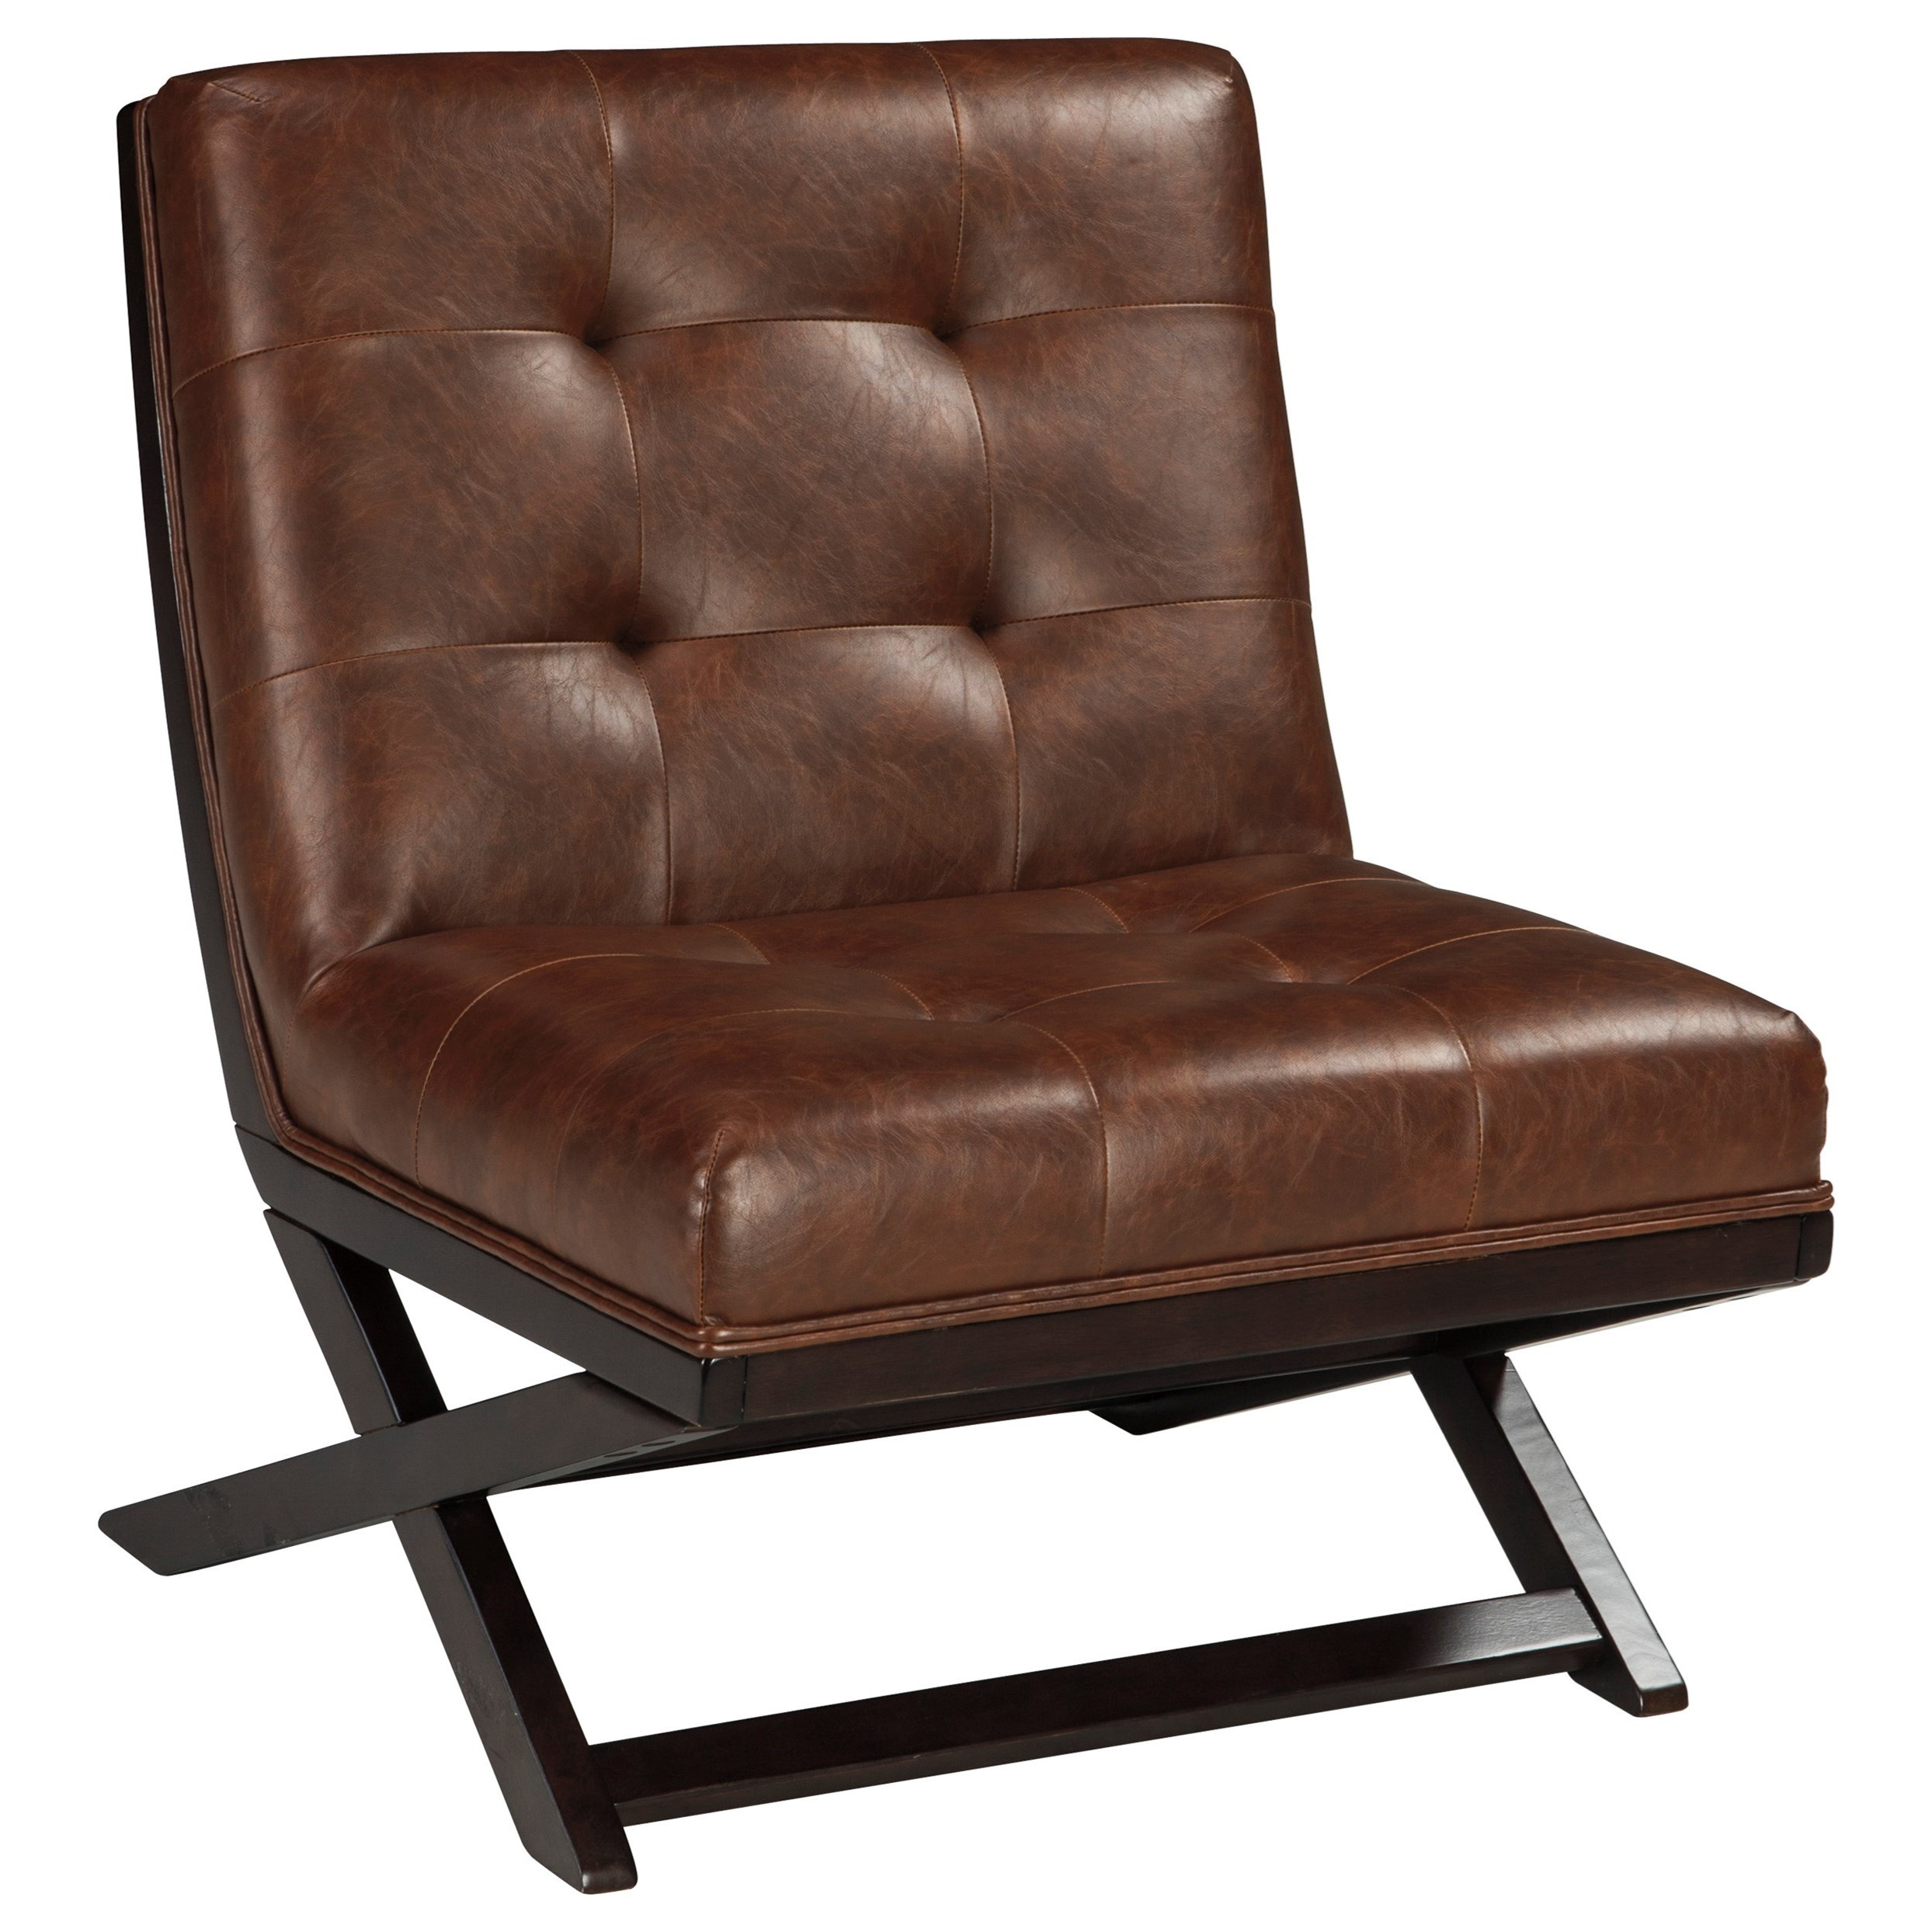 Armless Accent Chairs Wood X Base Armless Accent Chair With Brown Faux Leather